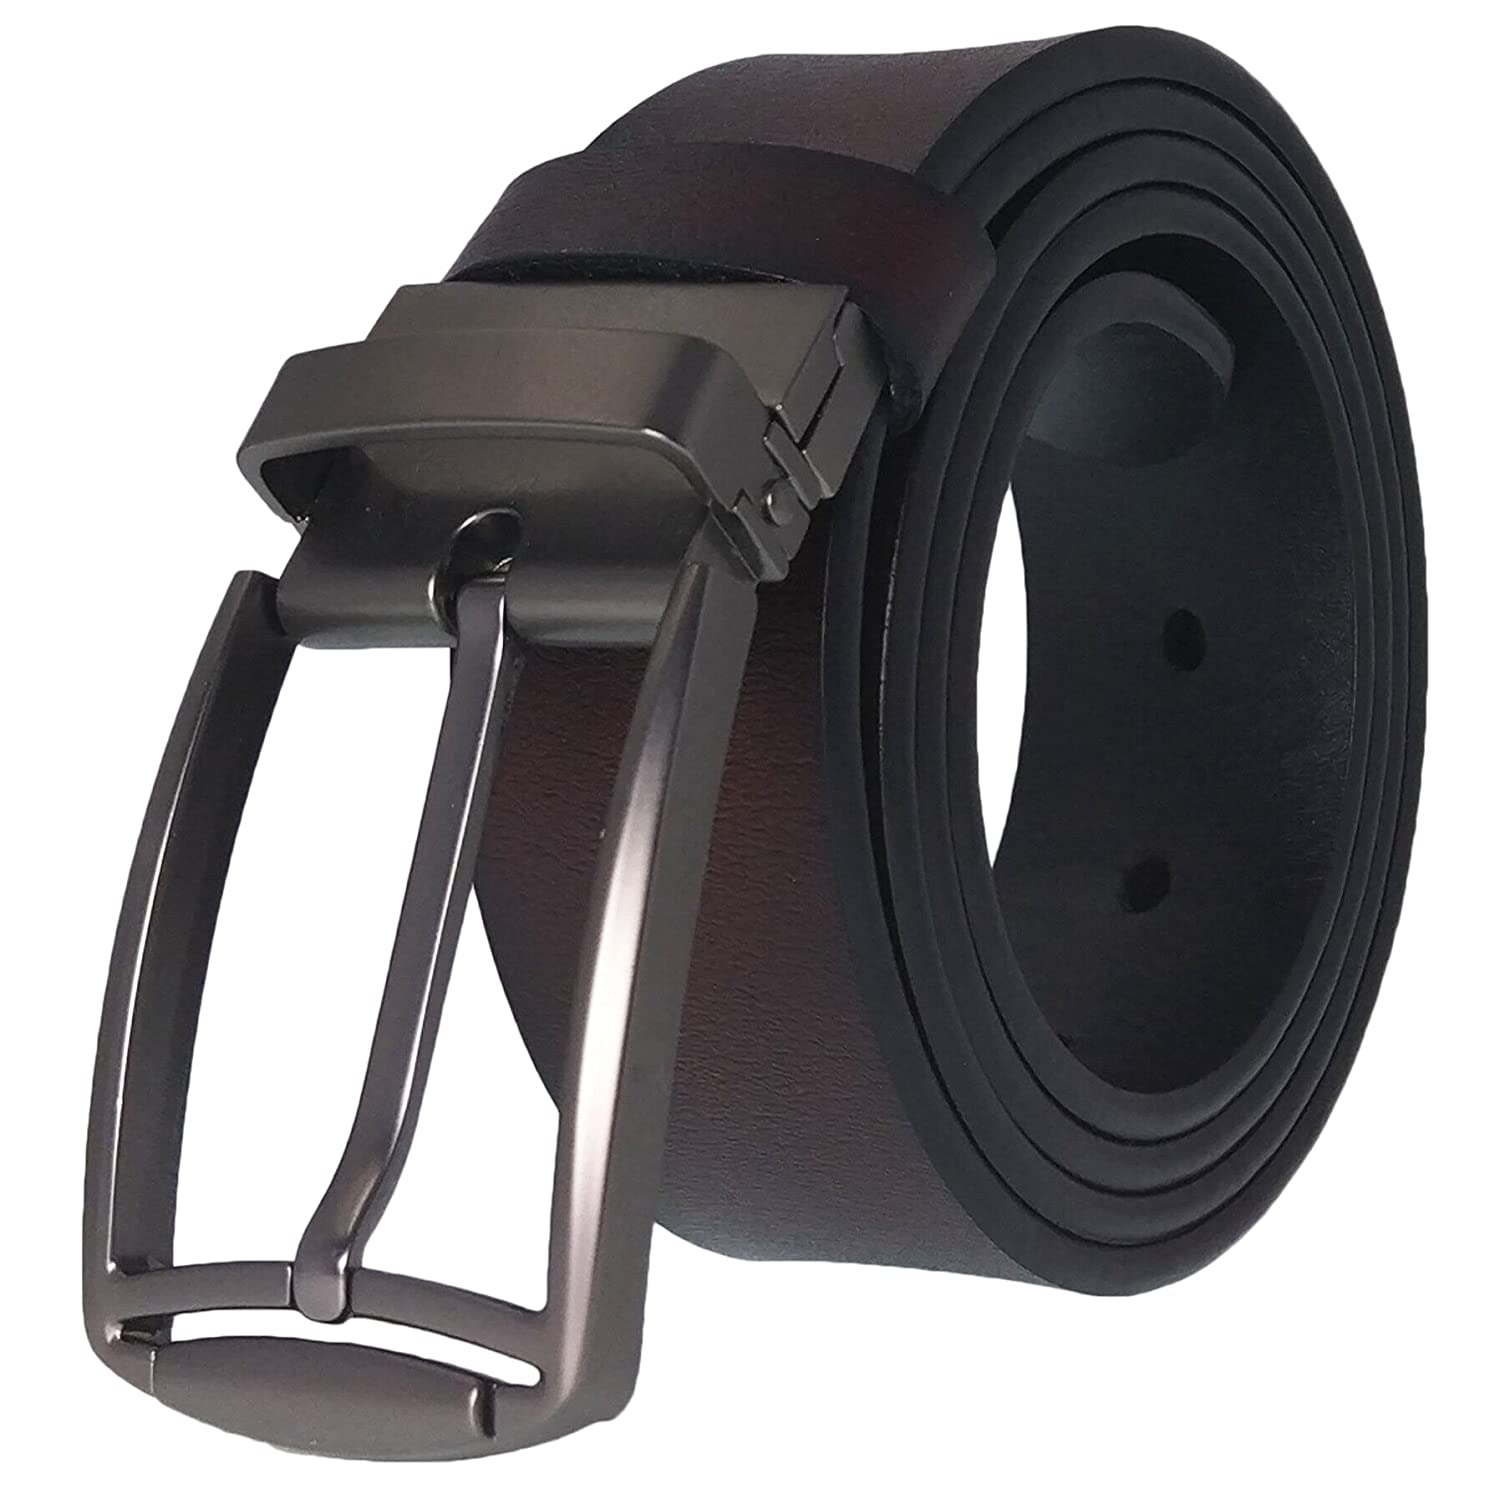 Men's Belt, West Leathers Top Grain Leather Belt for Men, Trim to Fit Men' s Belt B2018F